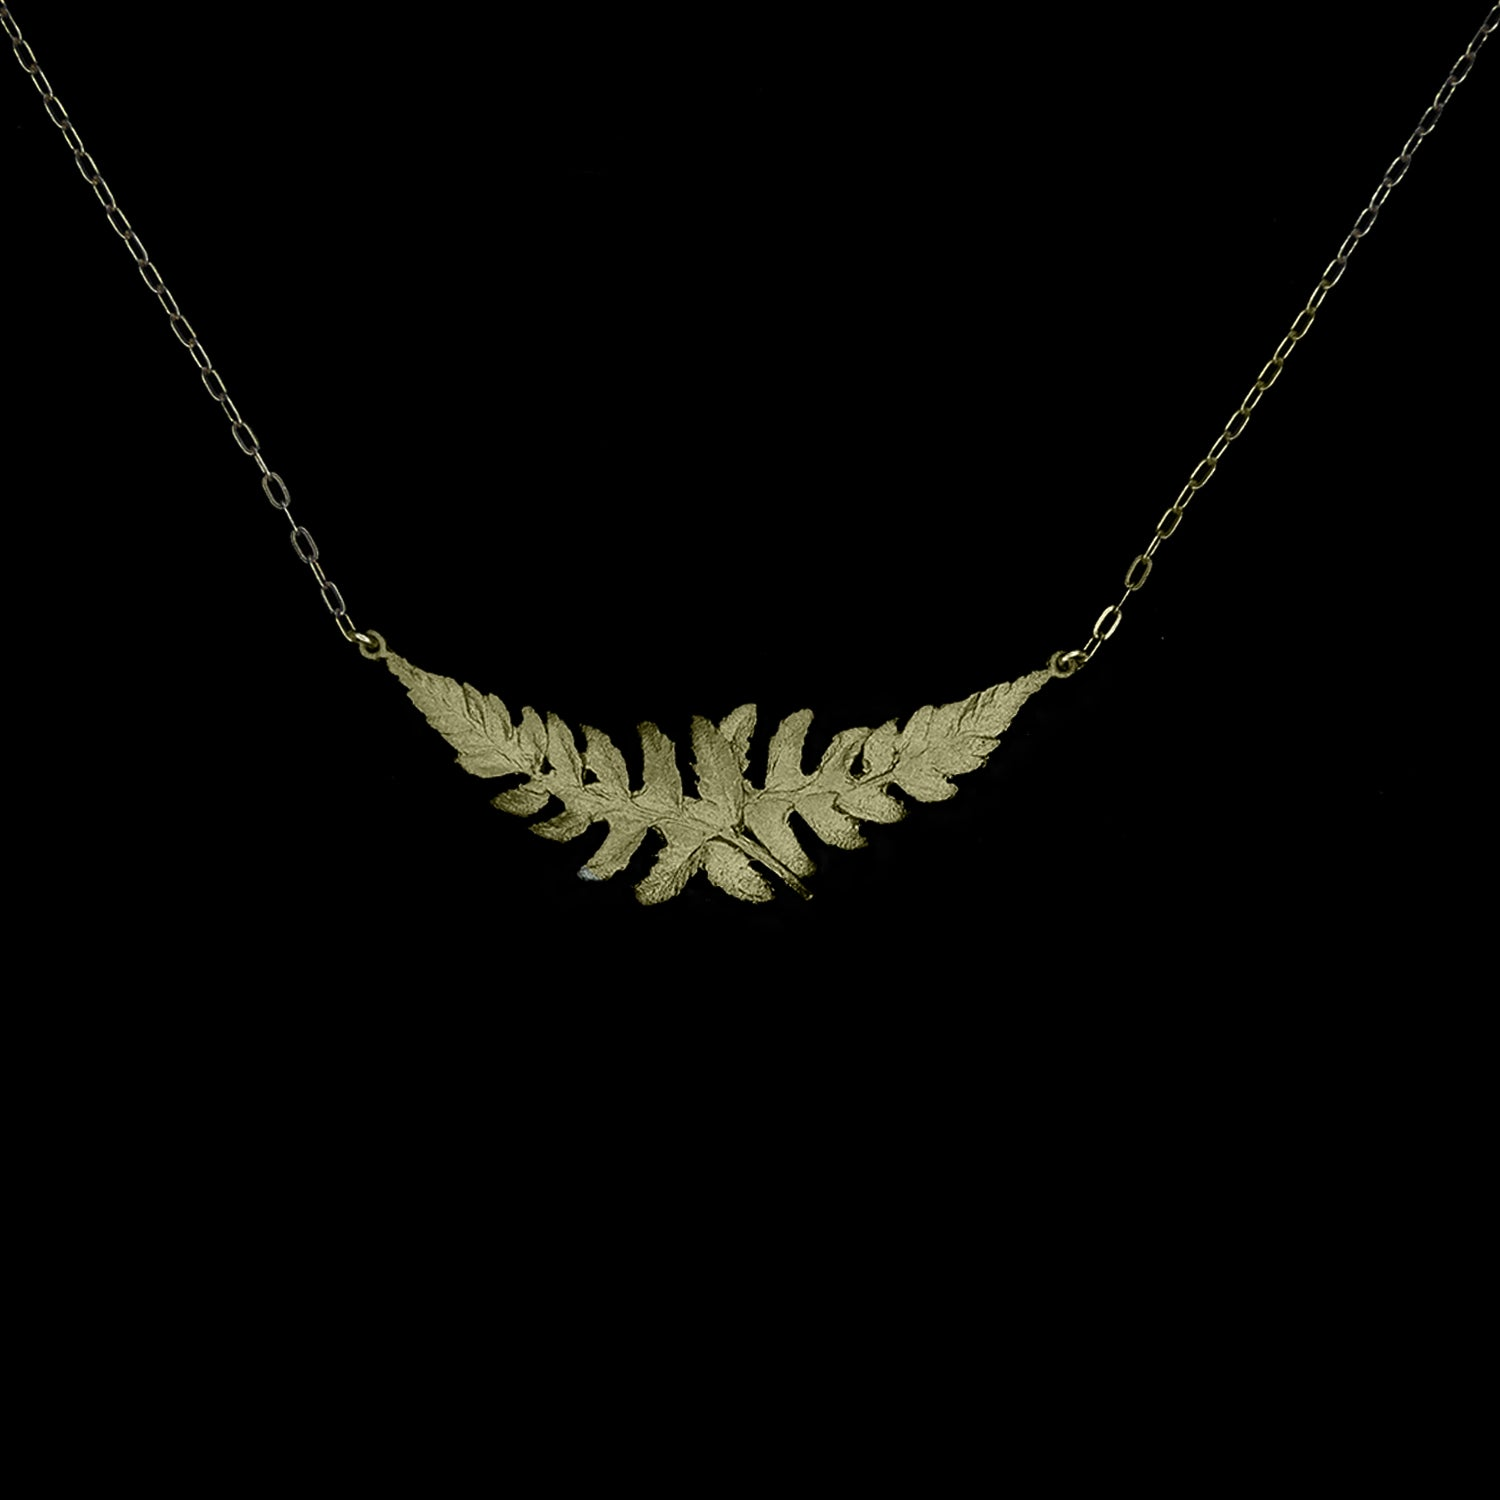 Fern Necklace - Dainty